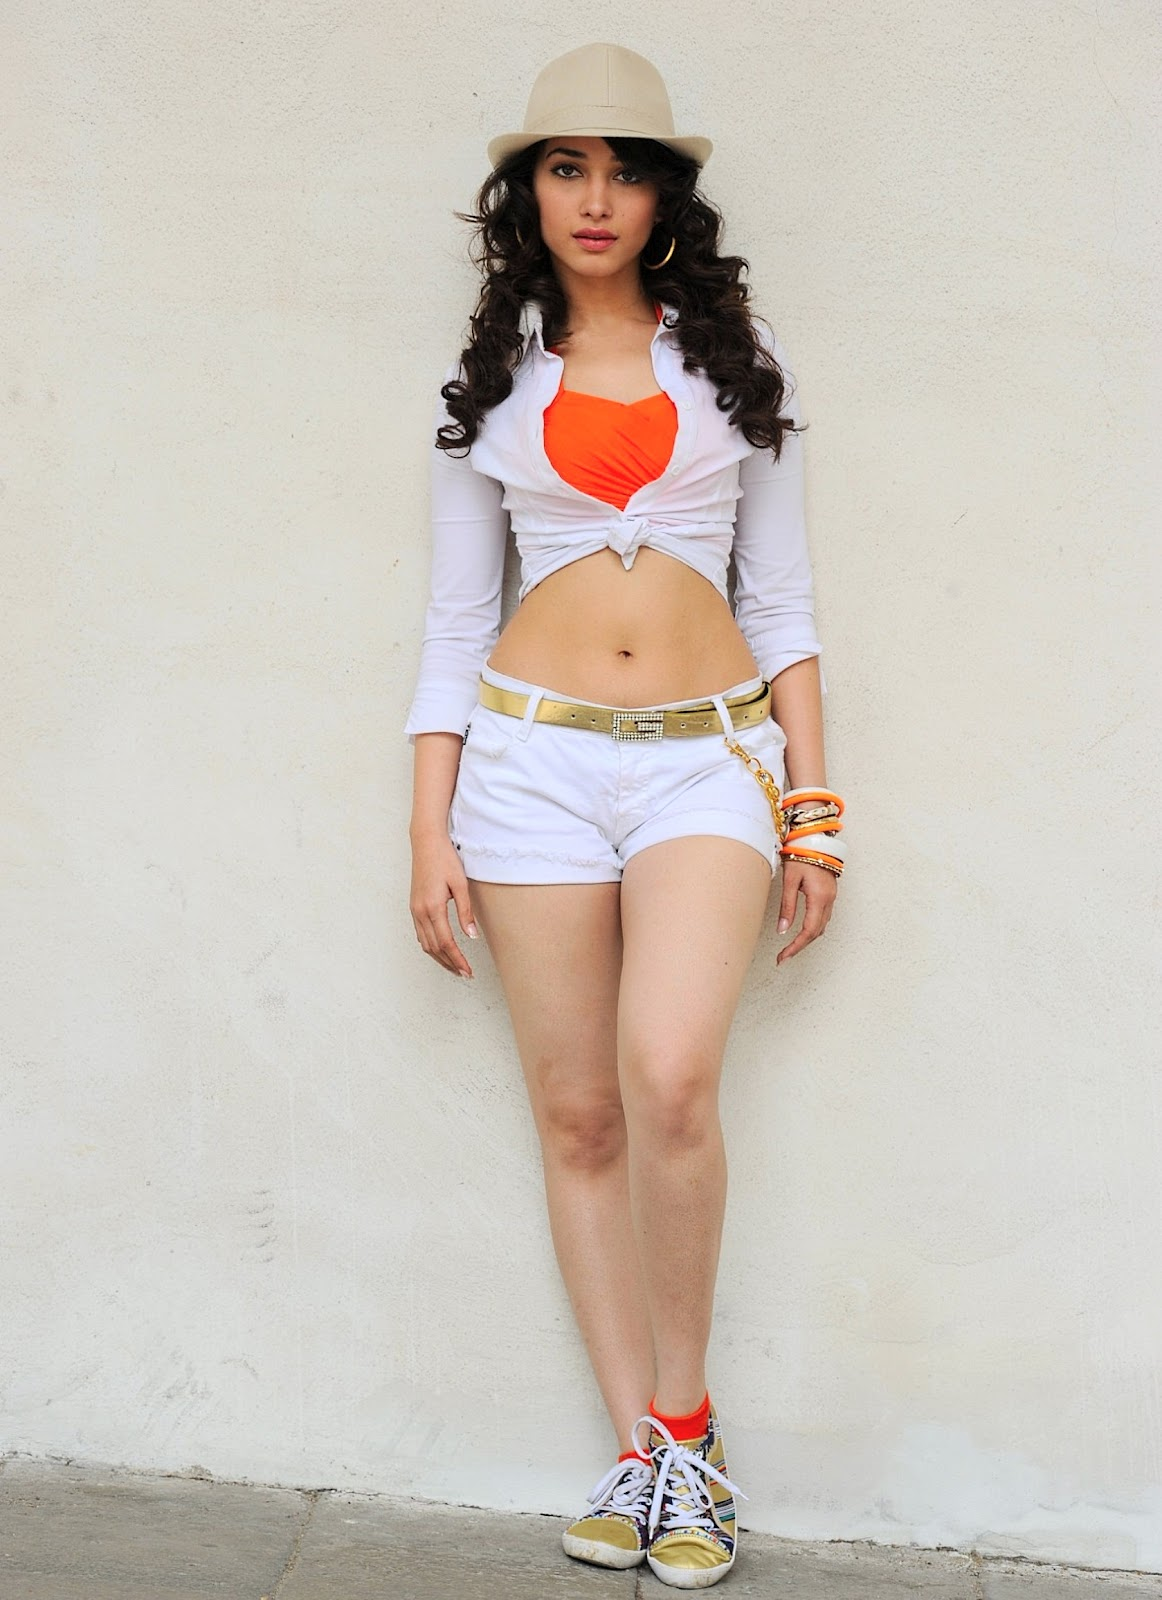 Unseen Sexy Tamanna Curvy Body & Thigh Show